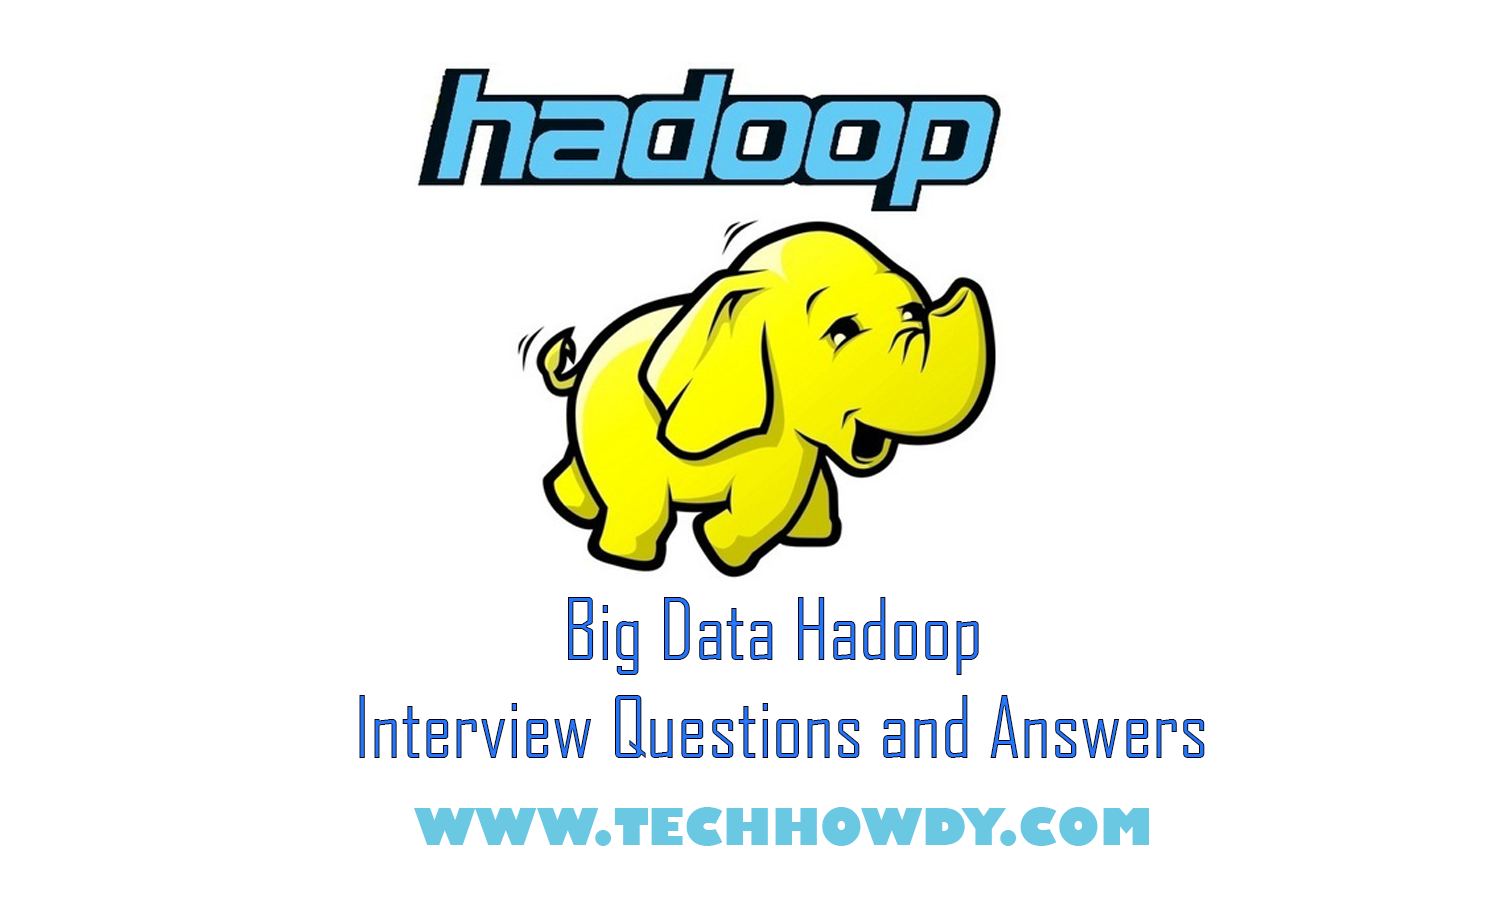 Sample Big Data Hadoop Interview Questions and Answers